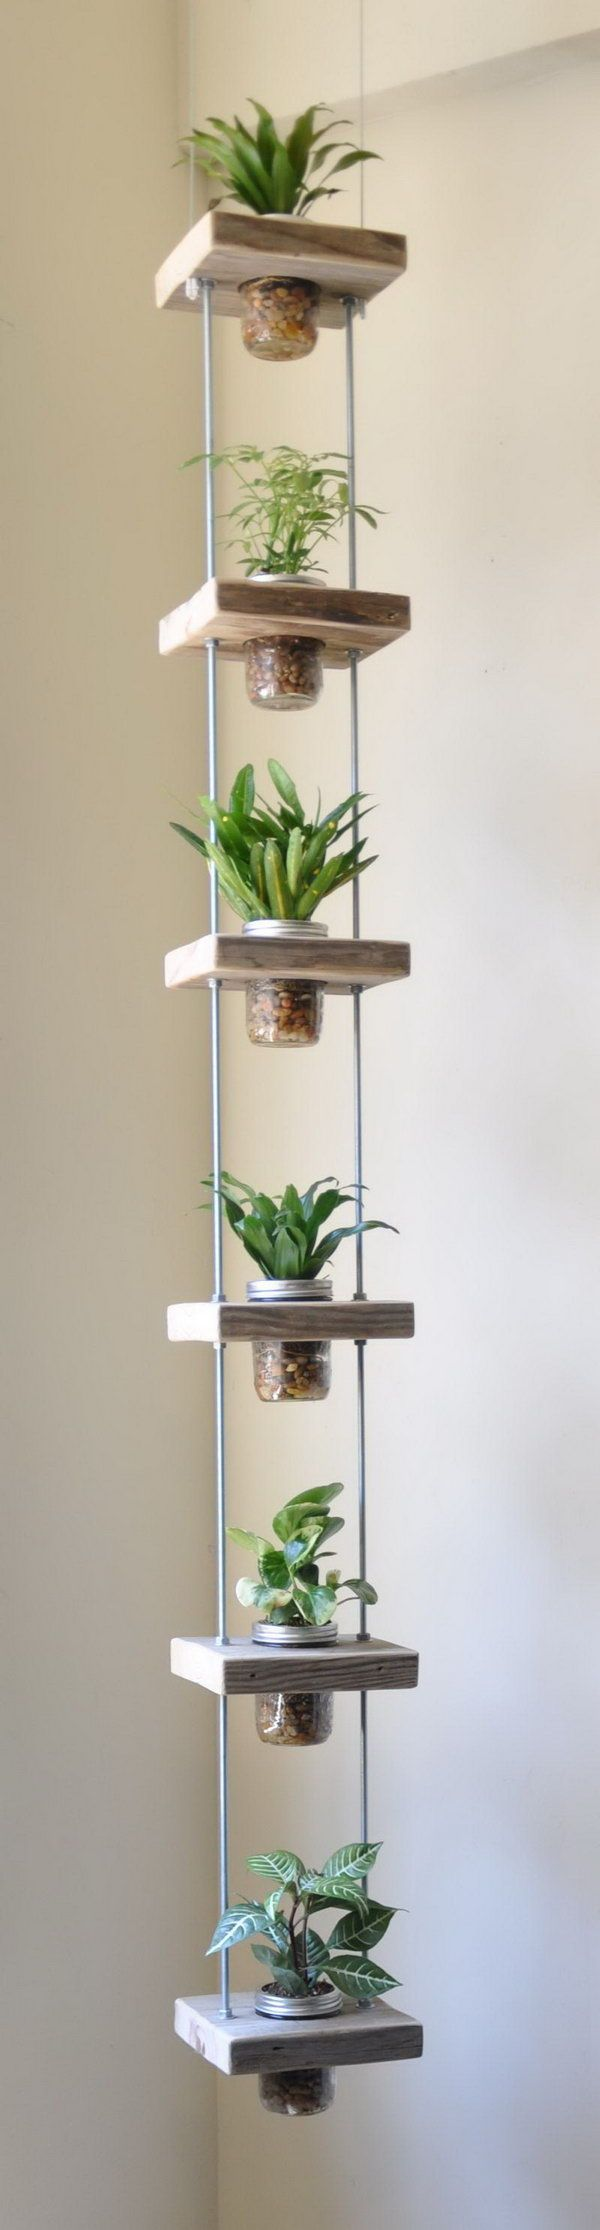 25 Awesome Indoor Garden Herb Diy Ideas 5